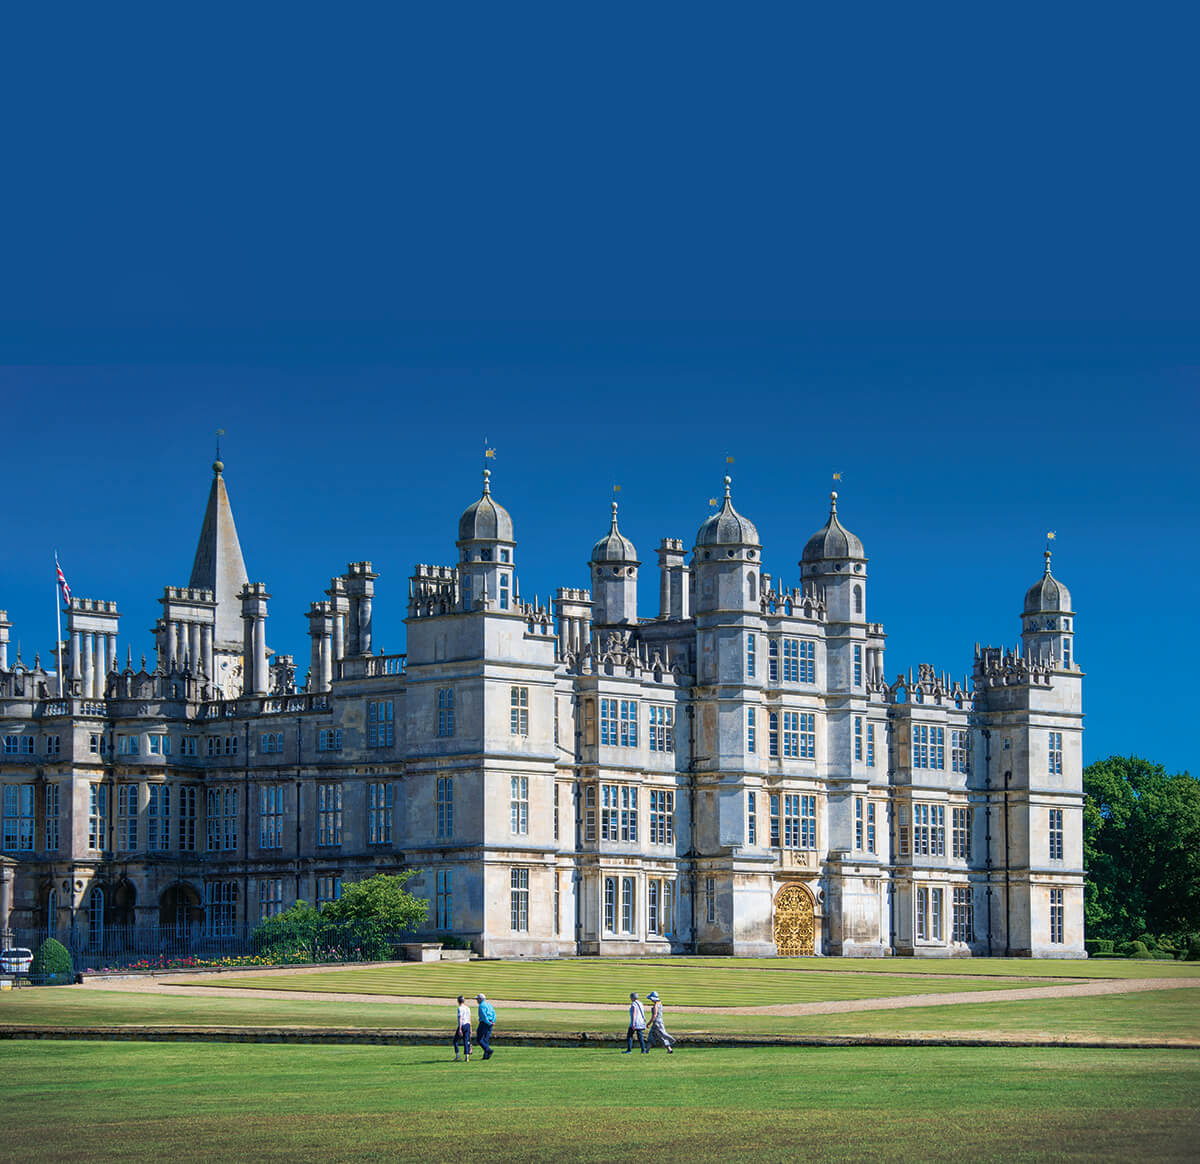 Burghley House - North West side